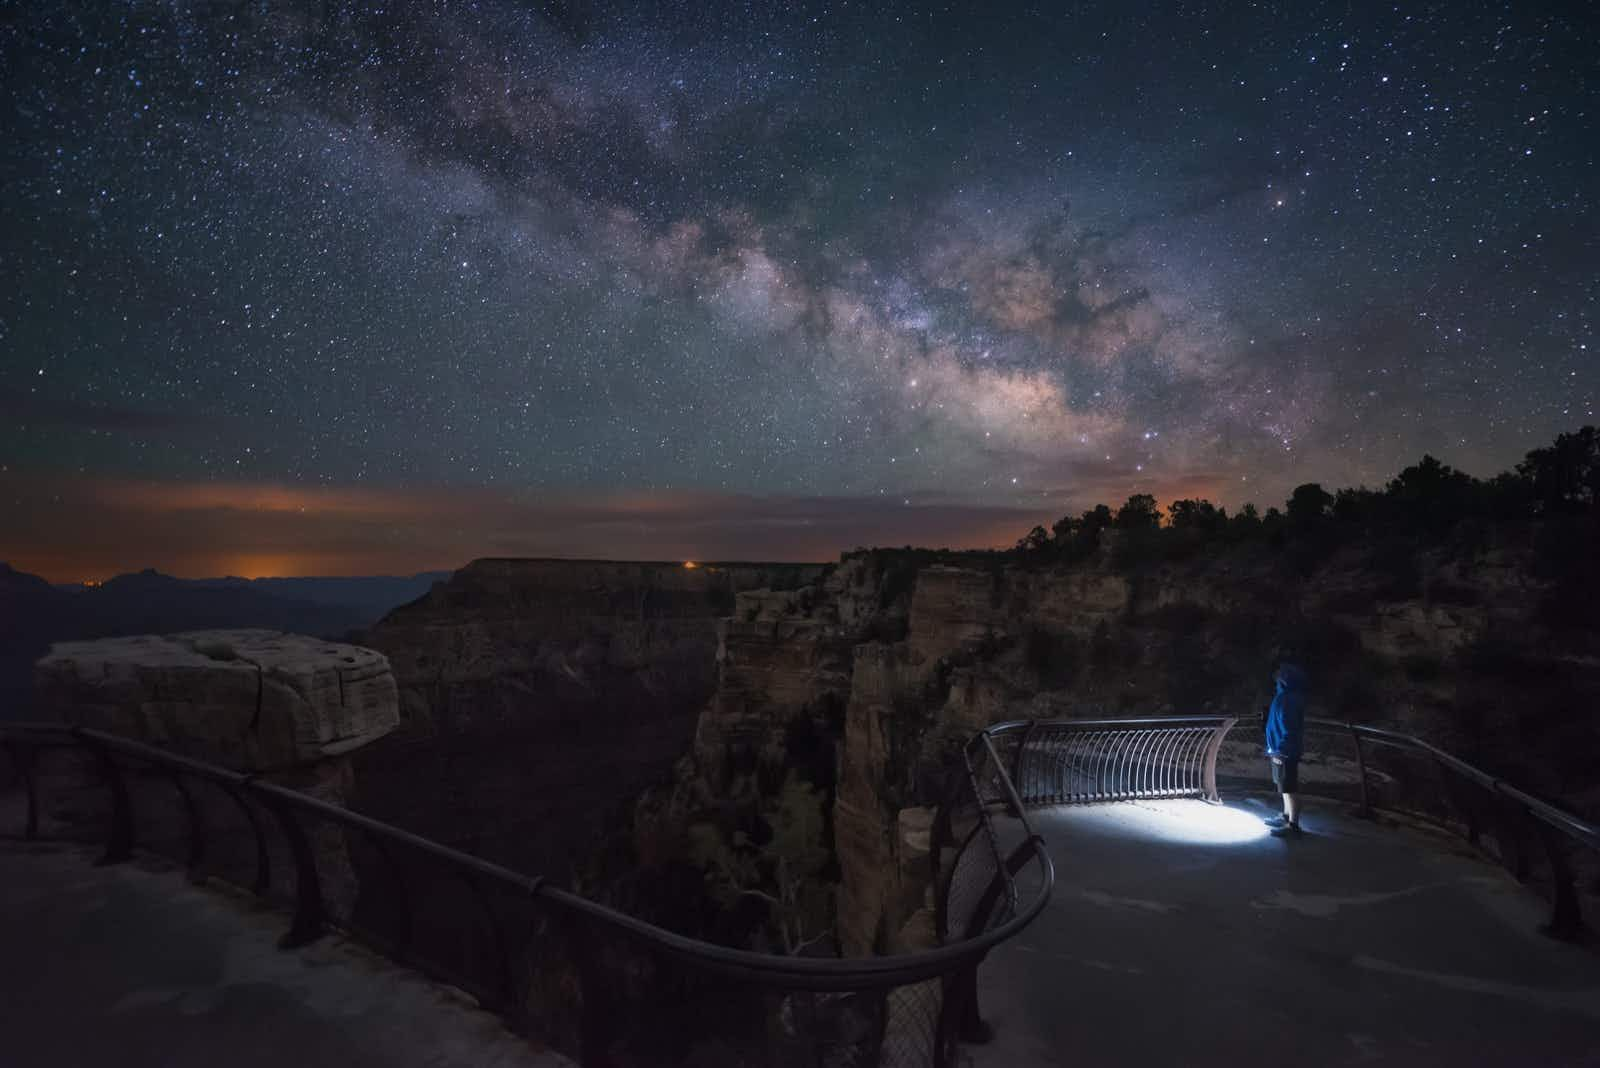 The Grand Canyon is a once-in-a-lifetime experience, at day or at night © Carlos Fernandez / Getty Images